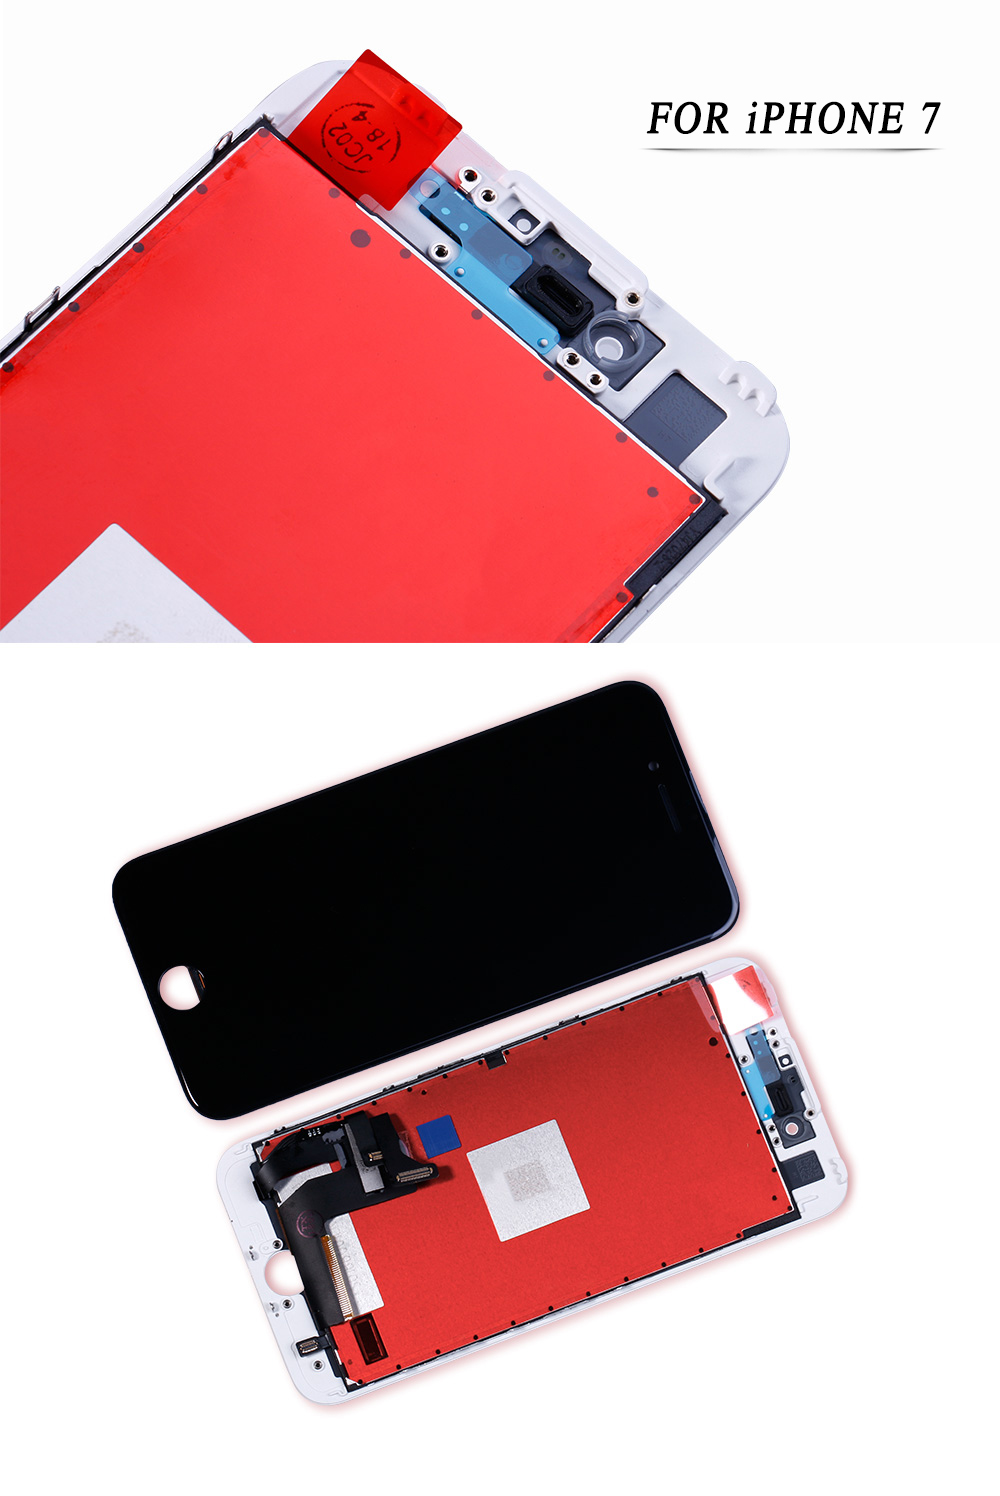 HTB1lVsaO9zqK1RjSZFLq6An2XXaC AAA+++ LCD Display For iPhone 6 7 touch Screen replacement Digitizer Assembly for iPhone 5S SE 6S LCD Screen No Dead Pixel